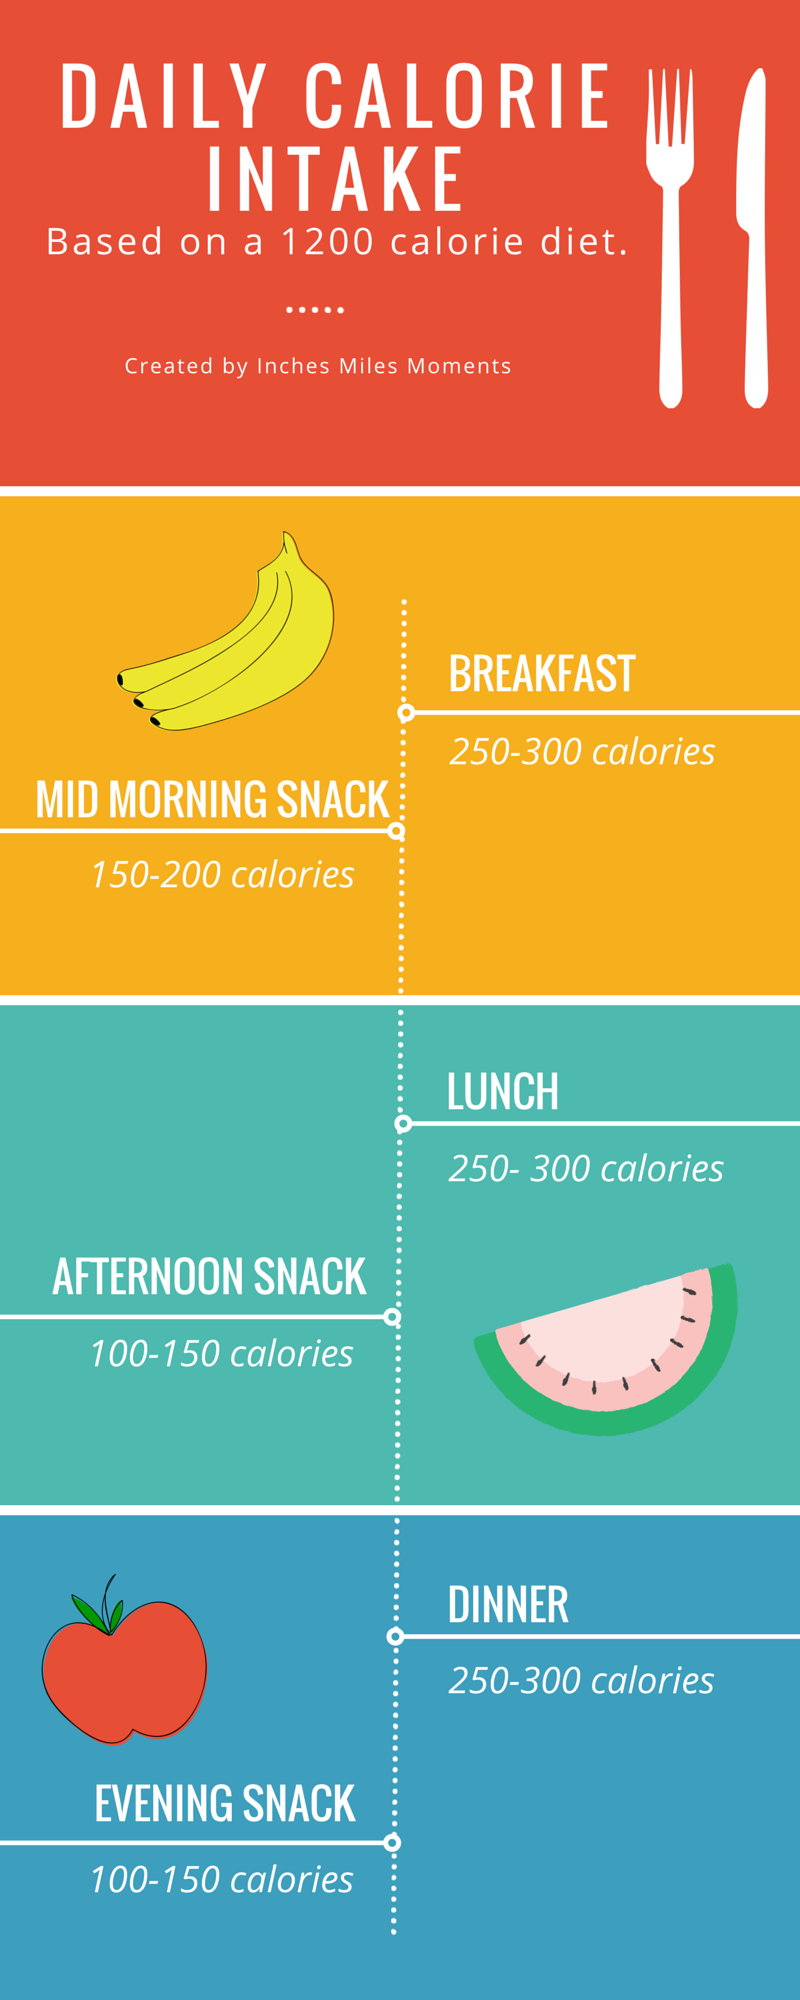 weight loss 1200 calories daily